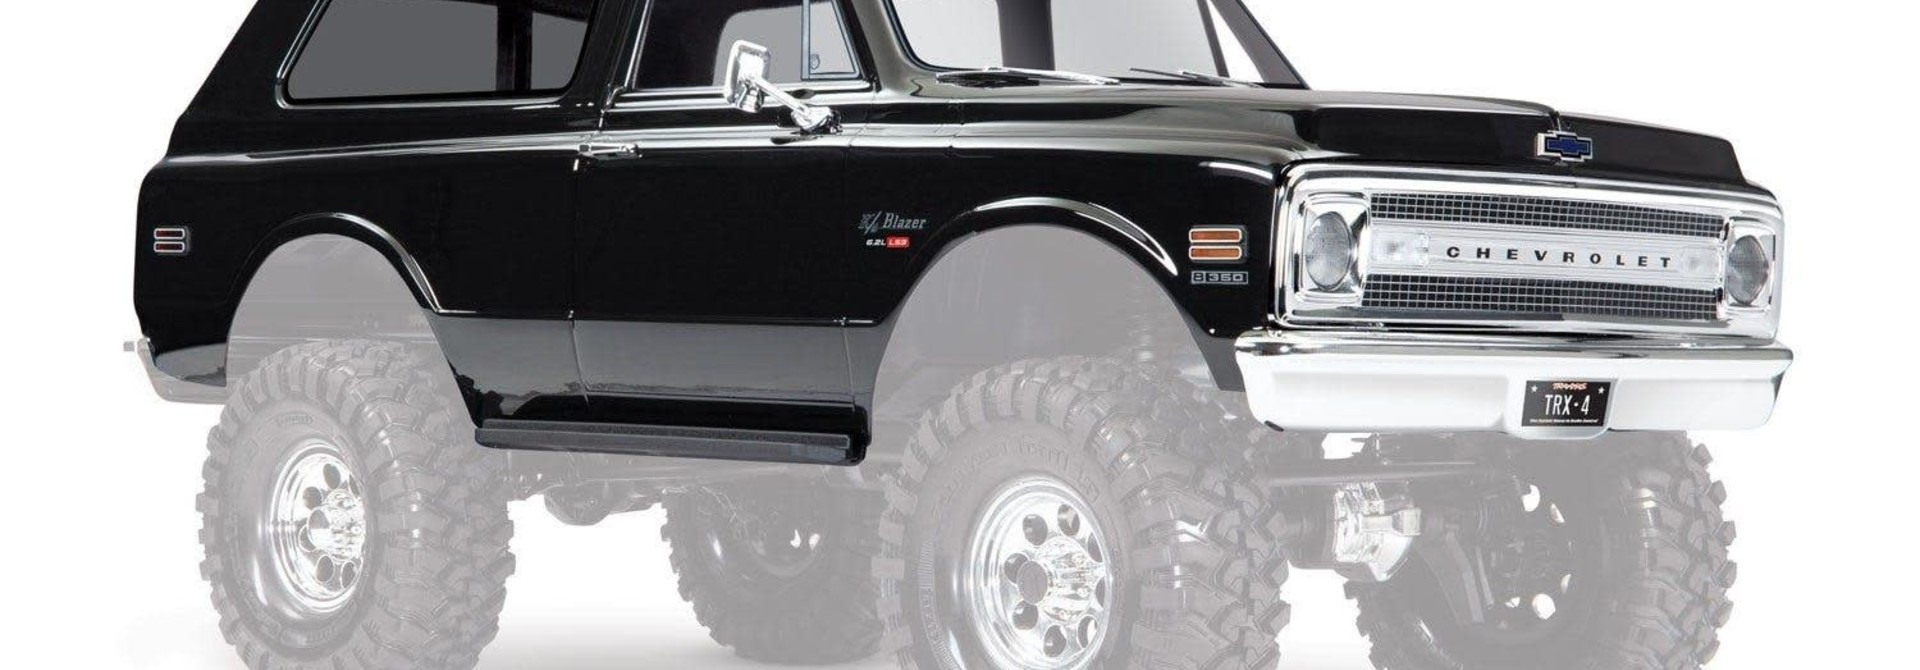 Body, Chevrolet Blazer (1969), complete (black) (includes grill, side mirrors, door handles, windshield wipers, front & rear bumpers, decals)